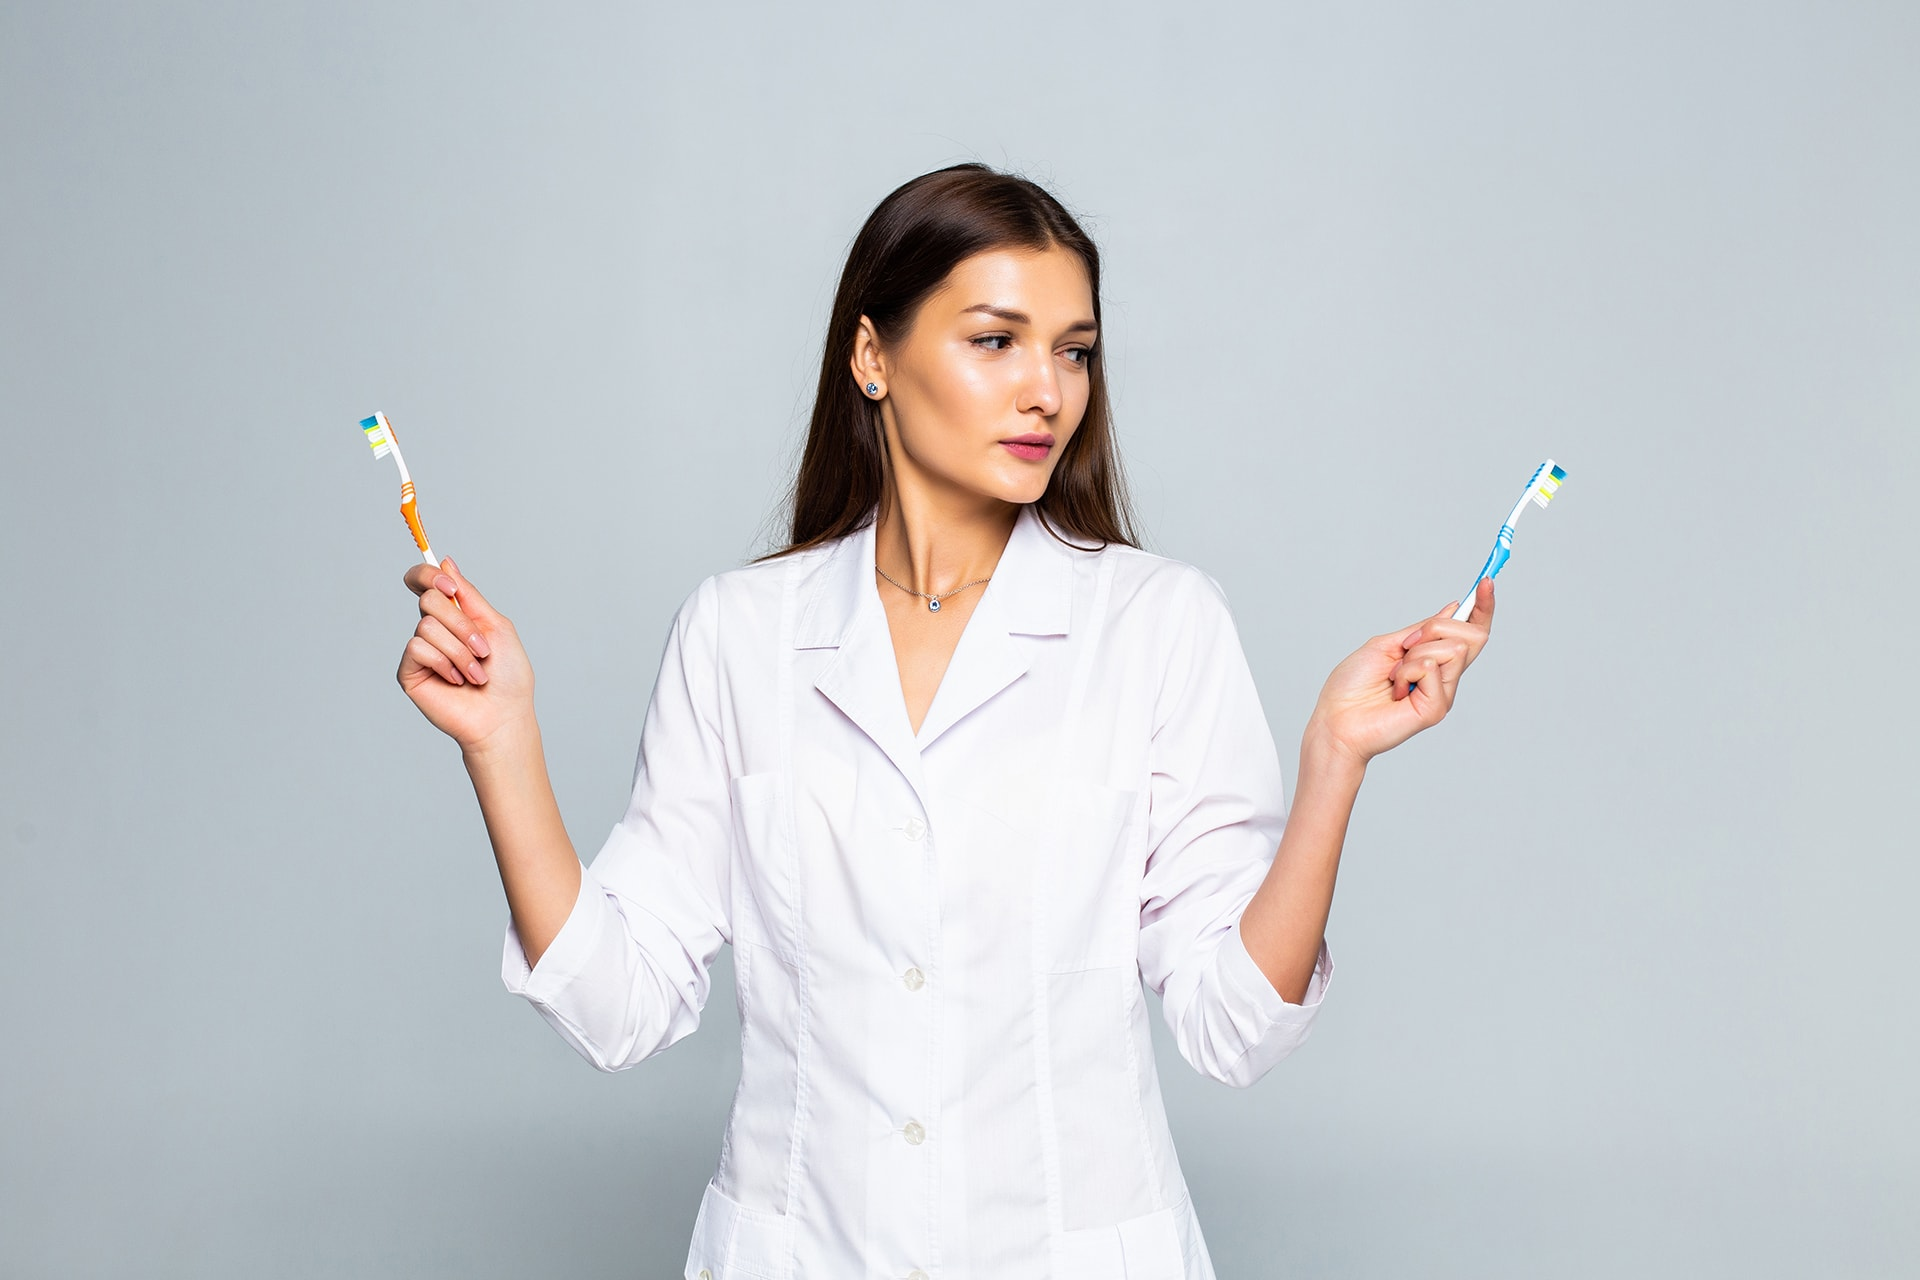 How to clean and disinfect toothbrushes?